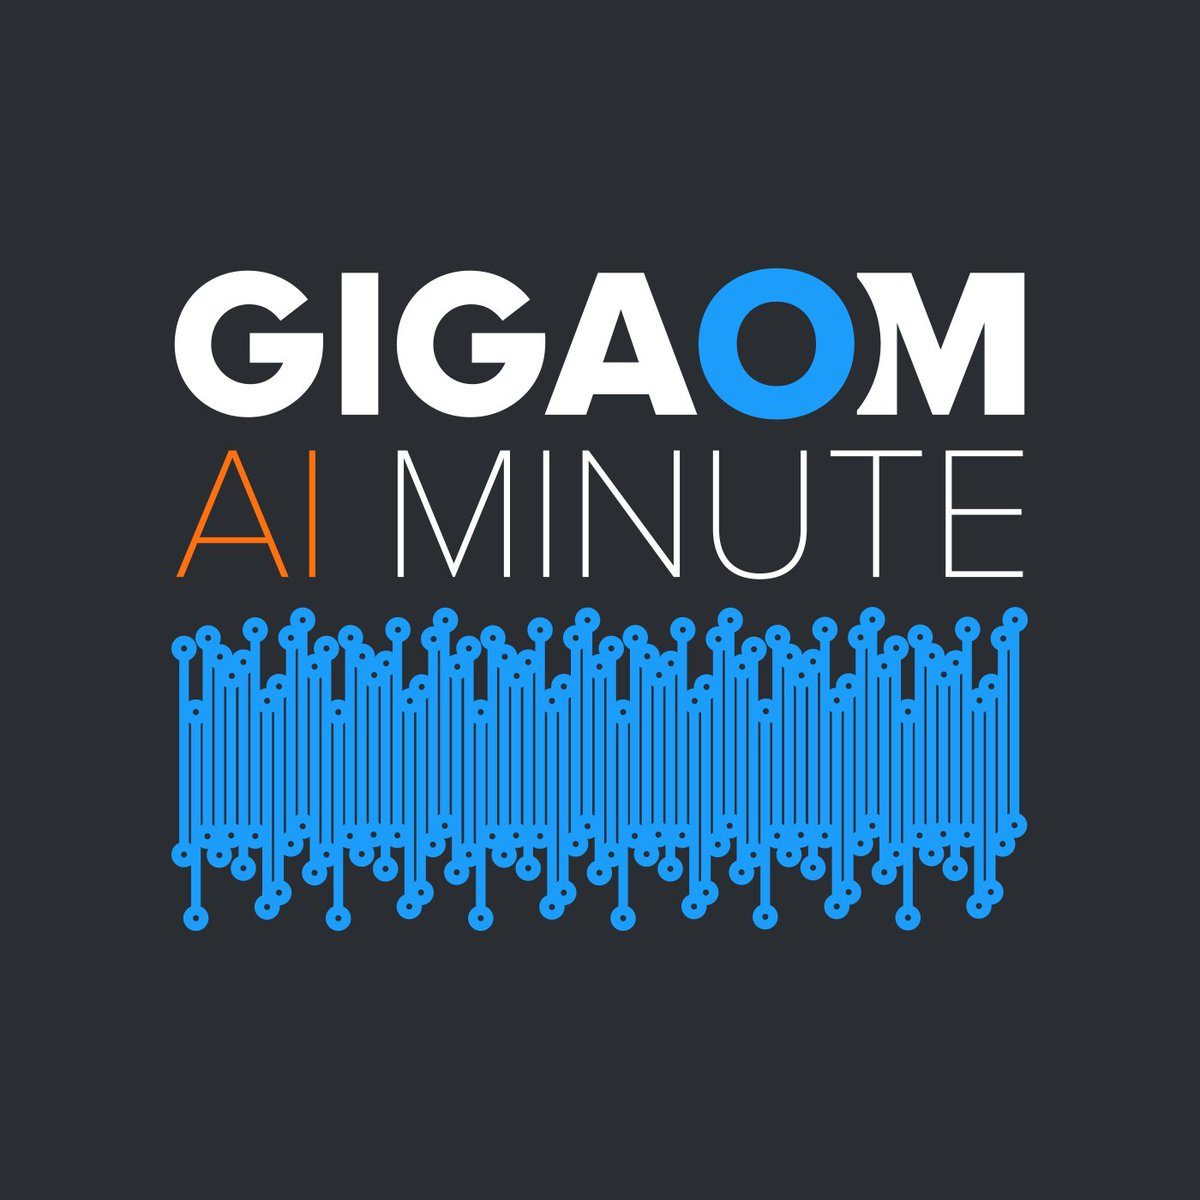 test Twitter Media - In this episode of the @AIMinute host @byronreese examines how artificial intelligence can seem alien at times. #artificialIntelligence #ML https://t.co/n2dXEIAFCq https://t.co/ikyhYqX0vt